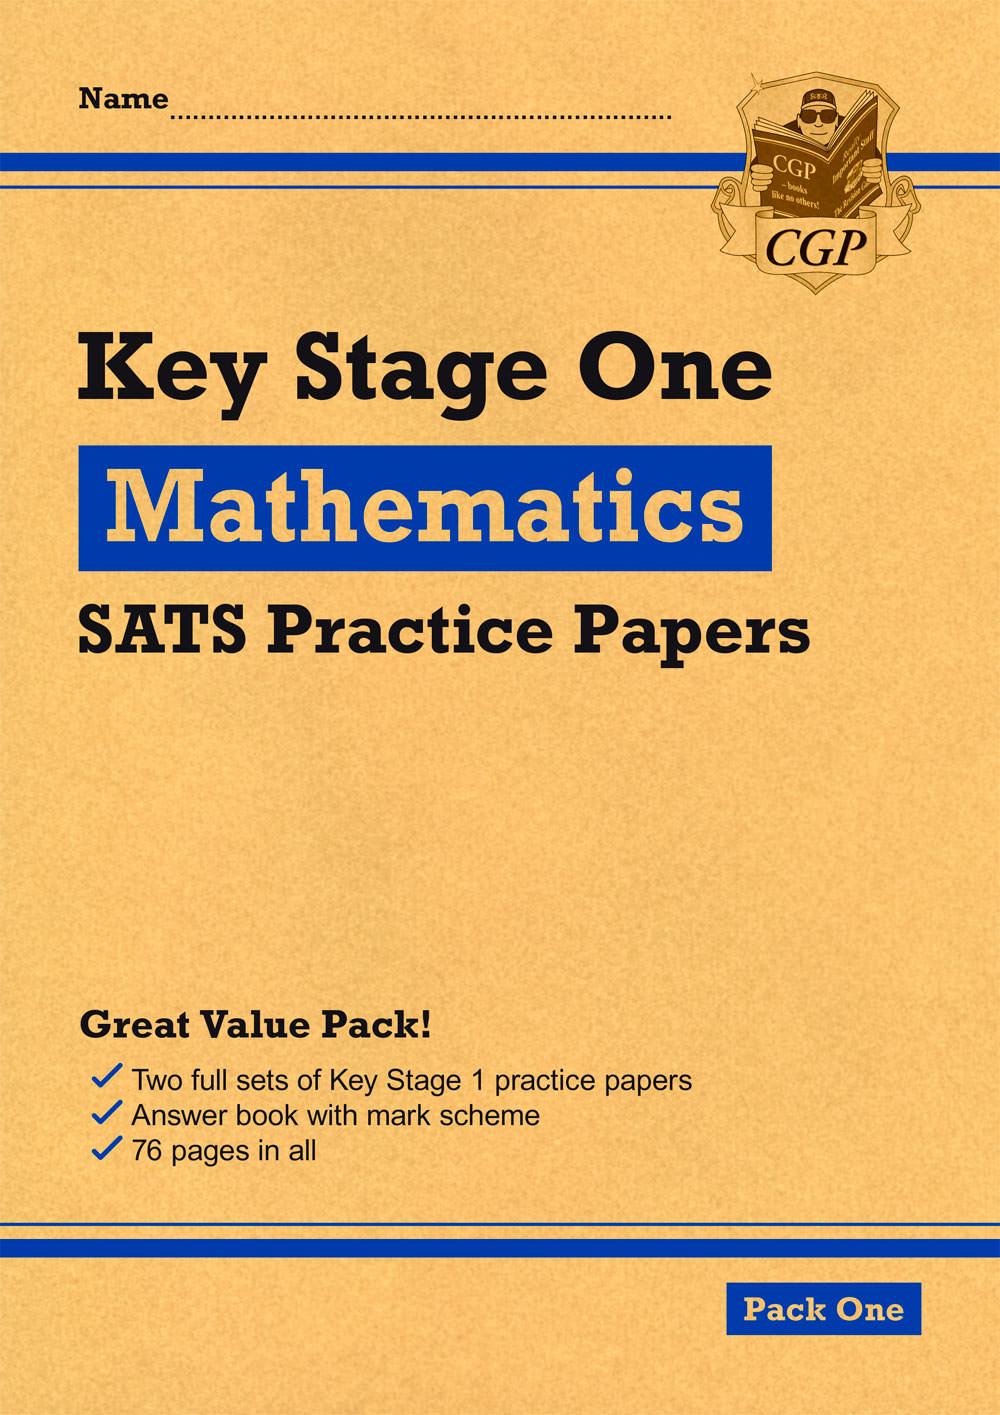 MHEP14 - KS1 Maths SATS Practice Papers: Pack 1